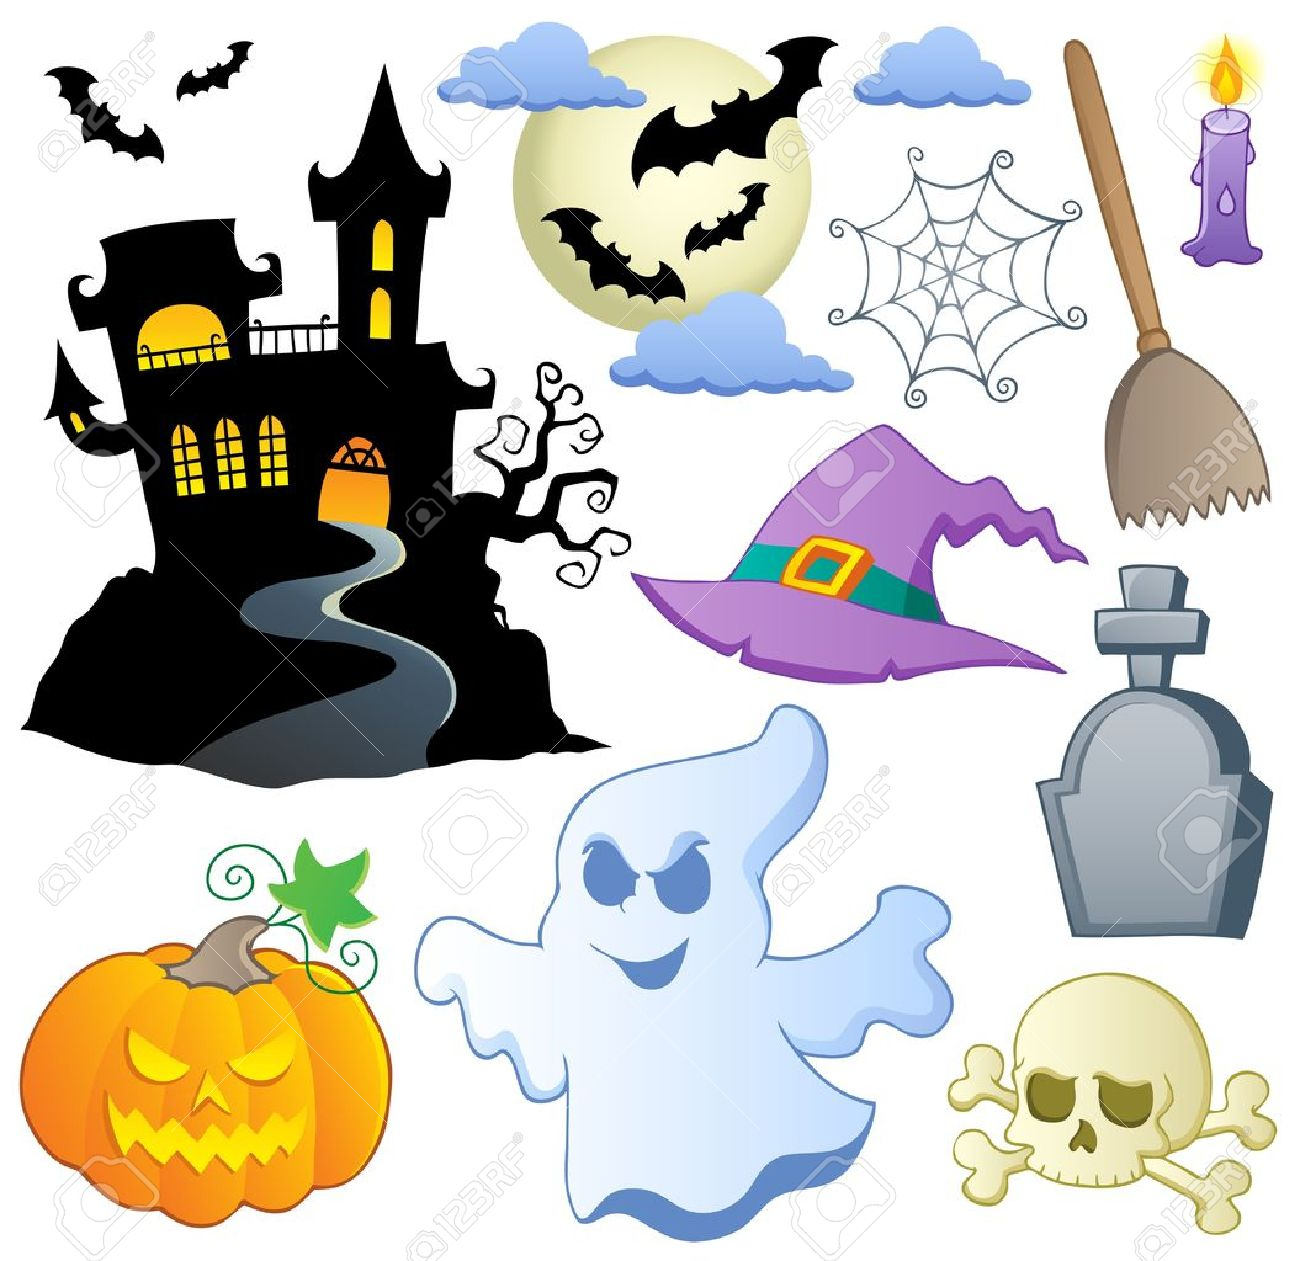 Halloween Theme Collection 1 Illustration Royalty Free Cliparts ...